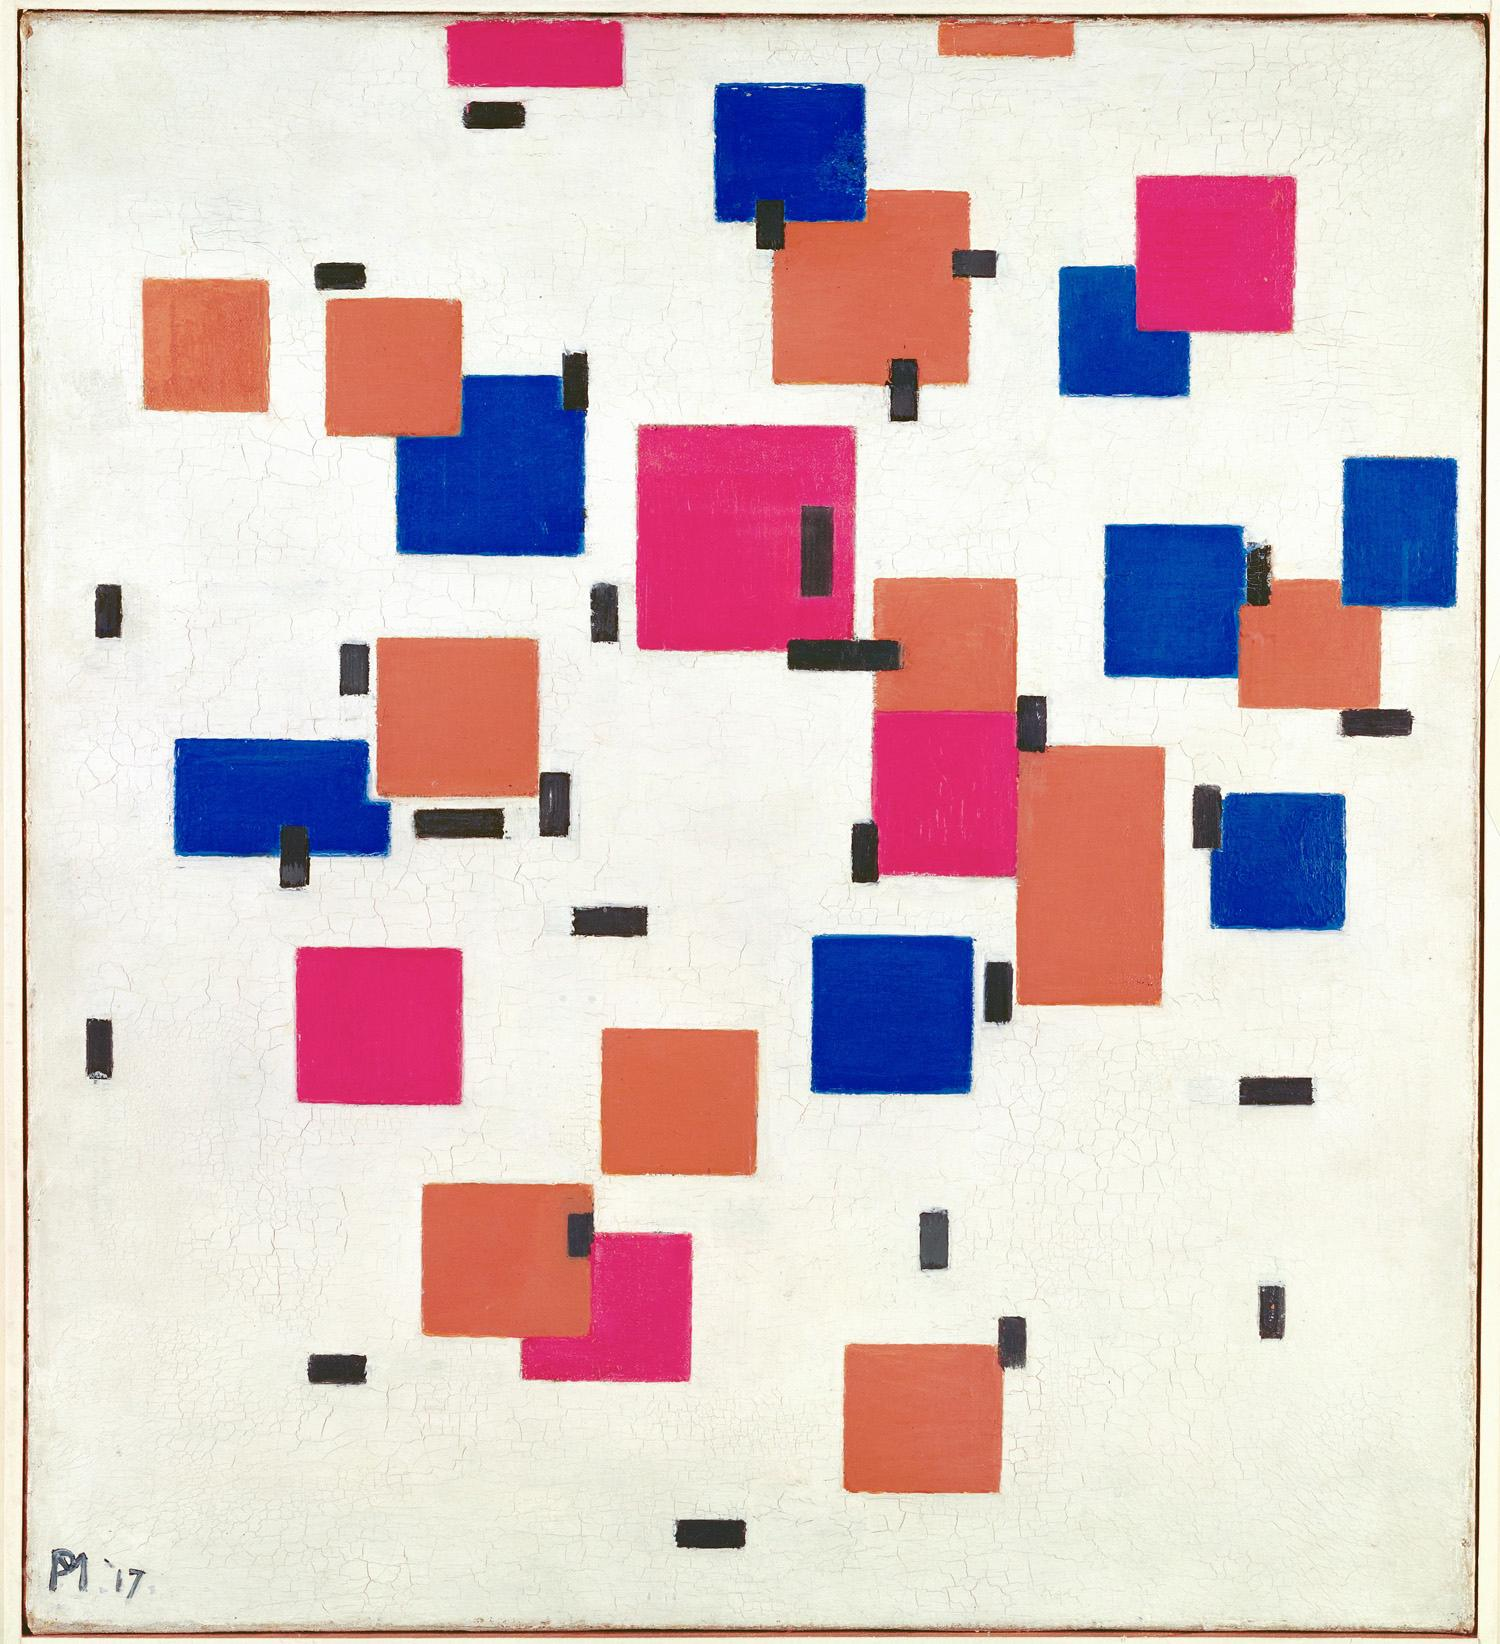 Piet Mondrian Title Composition in Color A Work Type painting Date 1917 Material oil on canvas Measurements 50.3 x 45.3 cm